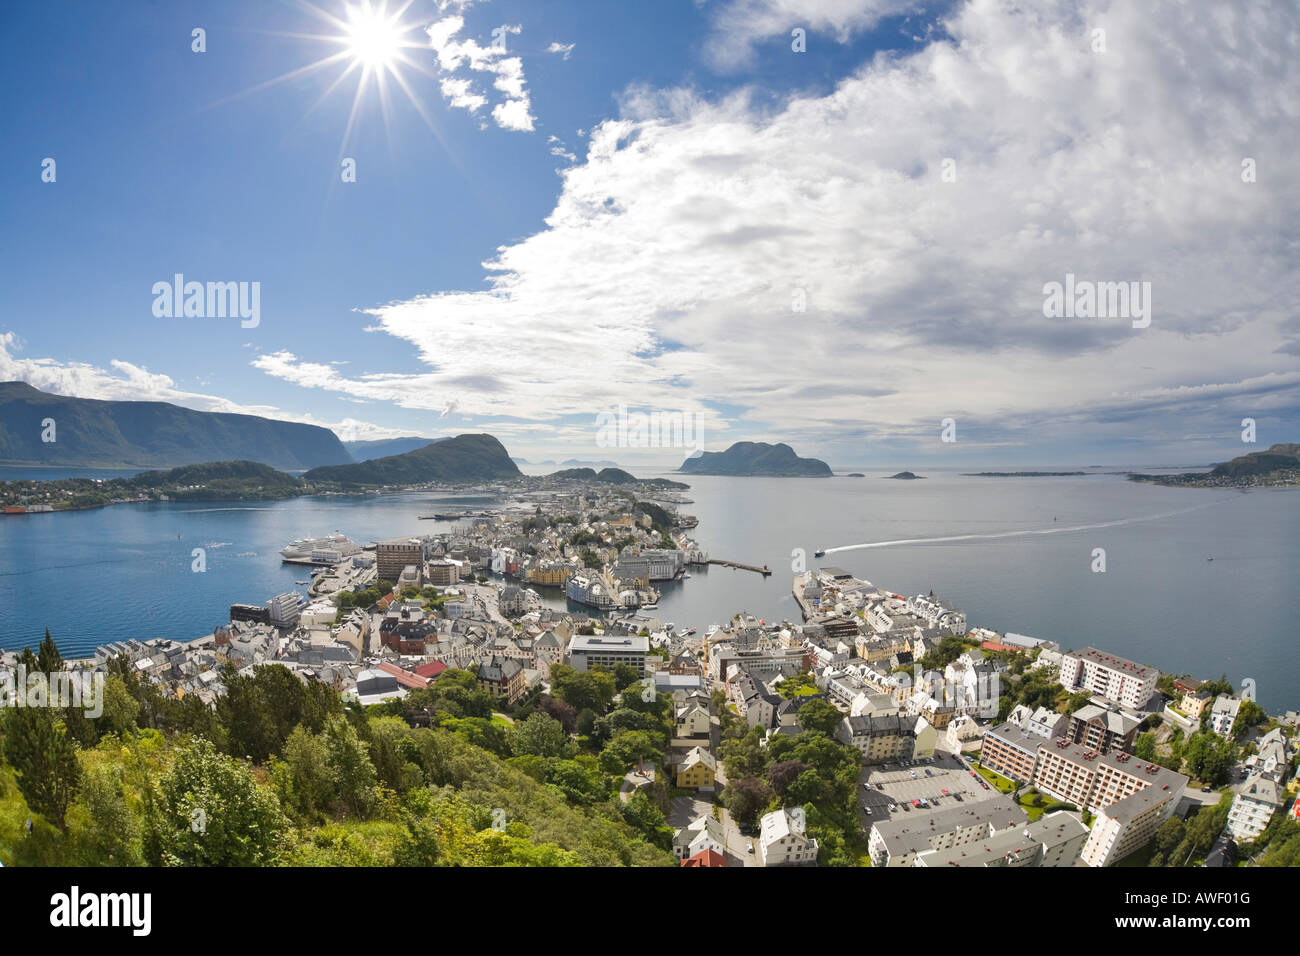 View of the city from Aksla Hill, Ålesund, Norway, Scandinavia, Europe Stock Photo